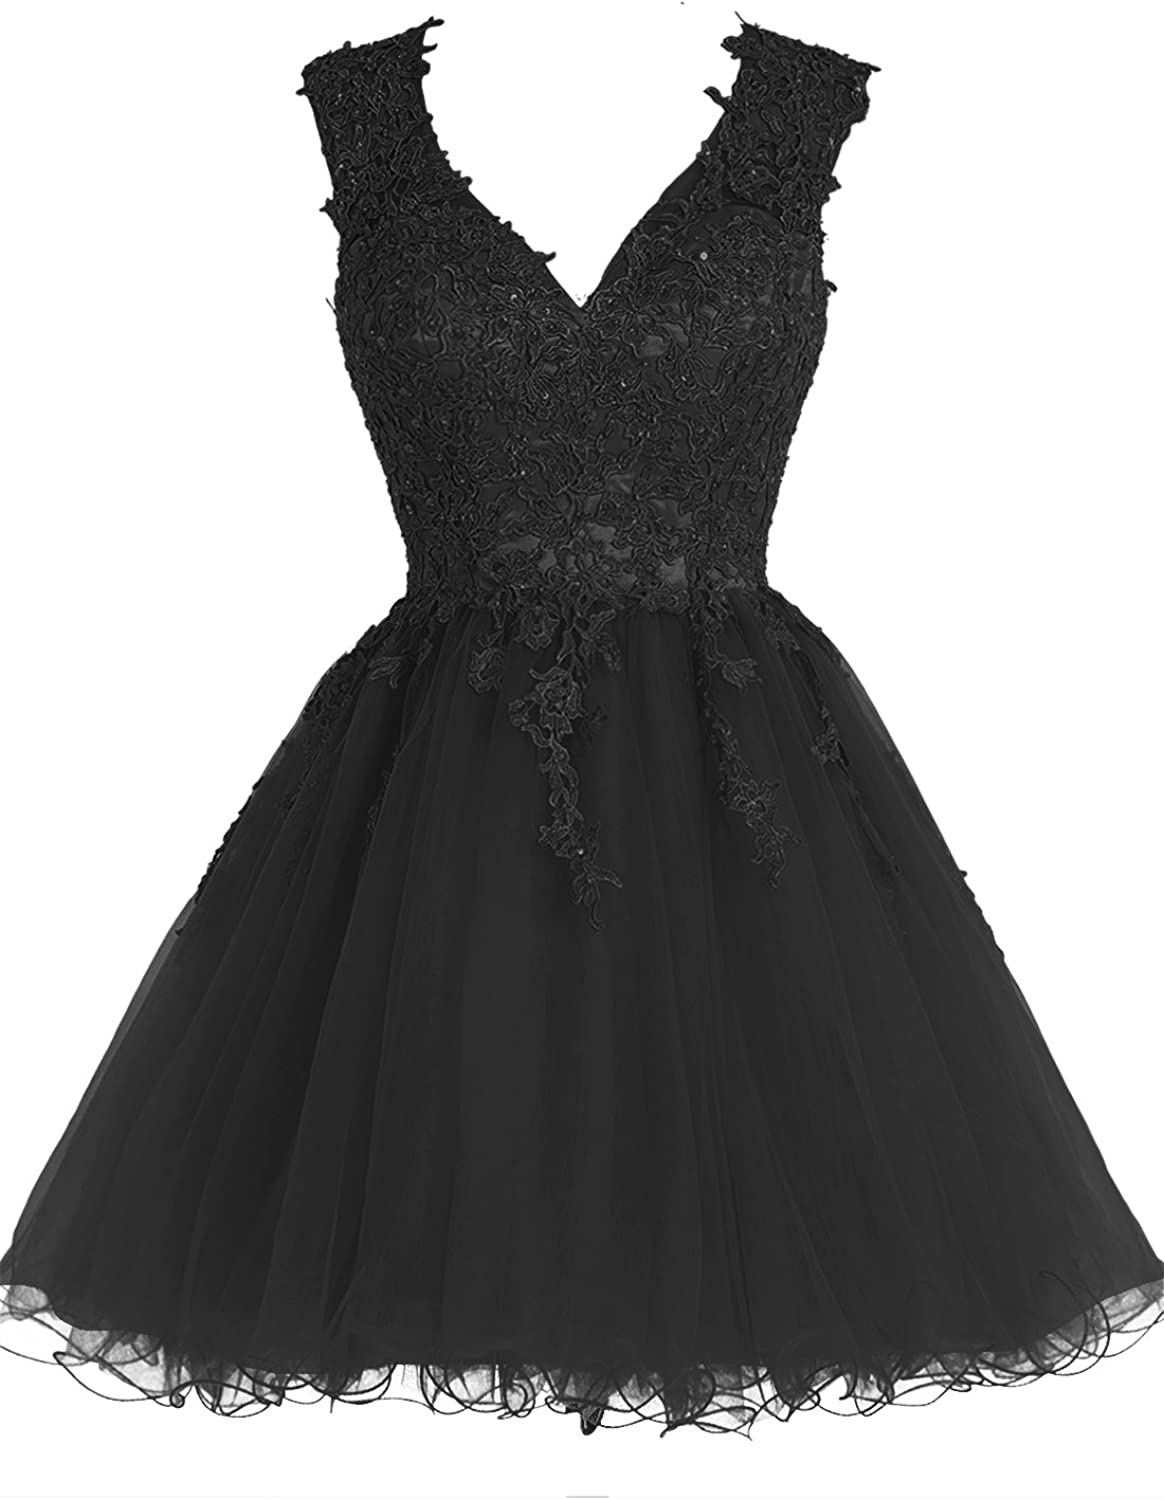 Bbonlinedress Short Tulle VNeck Appliques Homecoming Prom Party Dresses